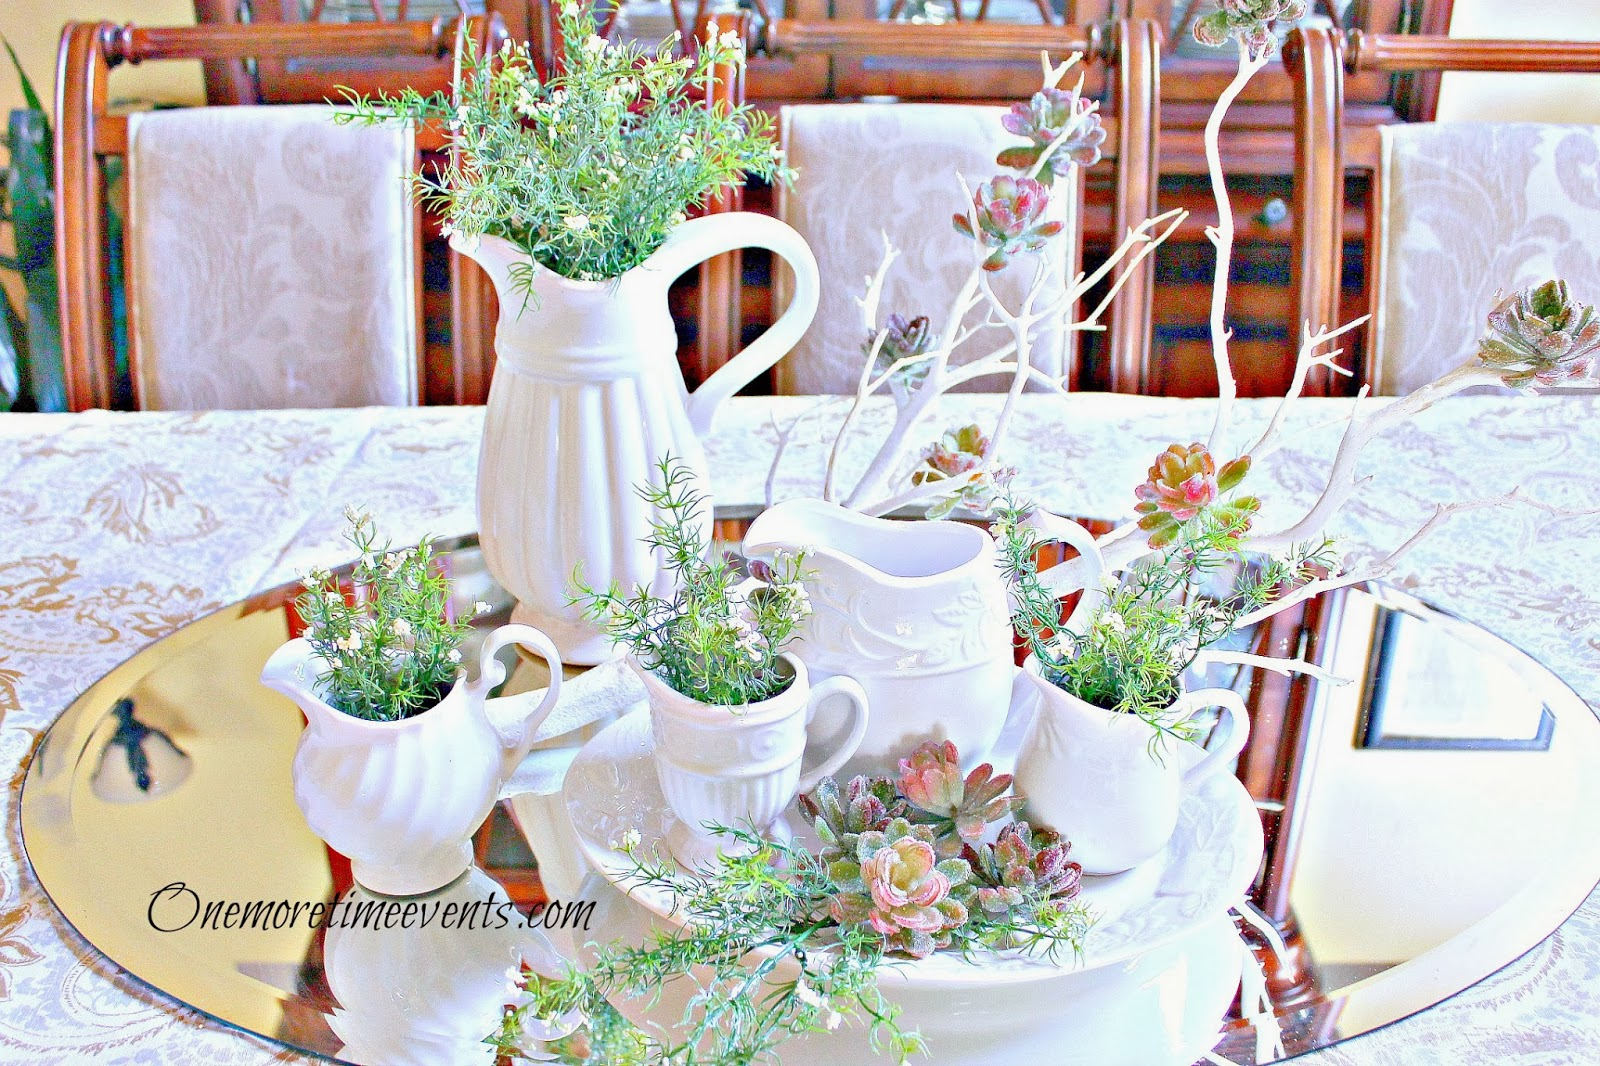 White Pitchers,greenery, succulent centerpiece at One More Time Events.com